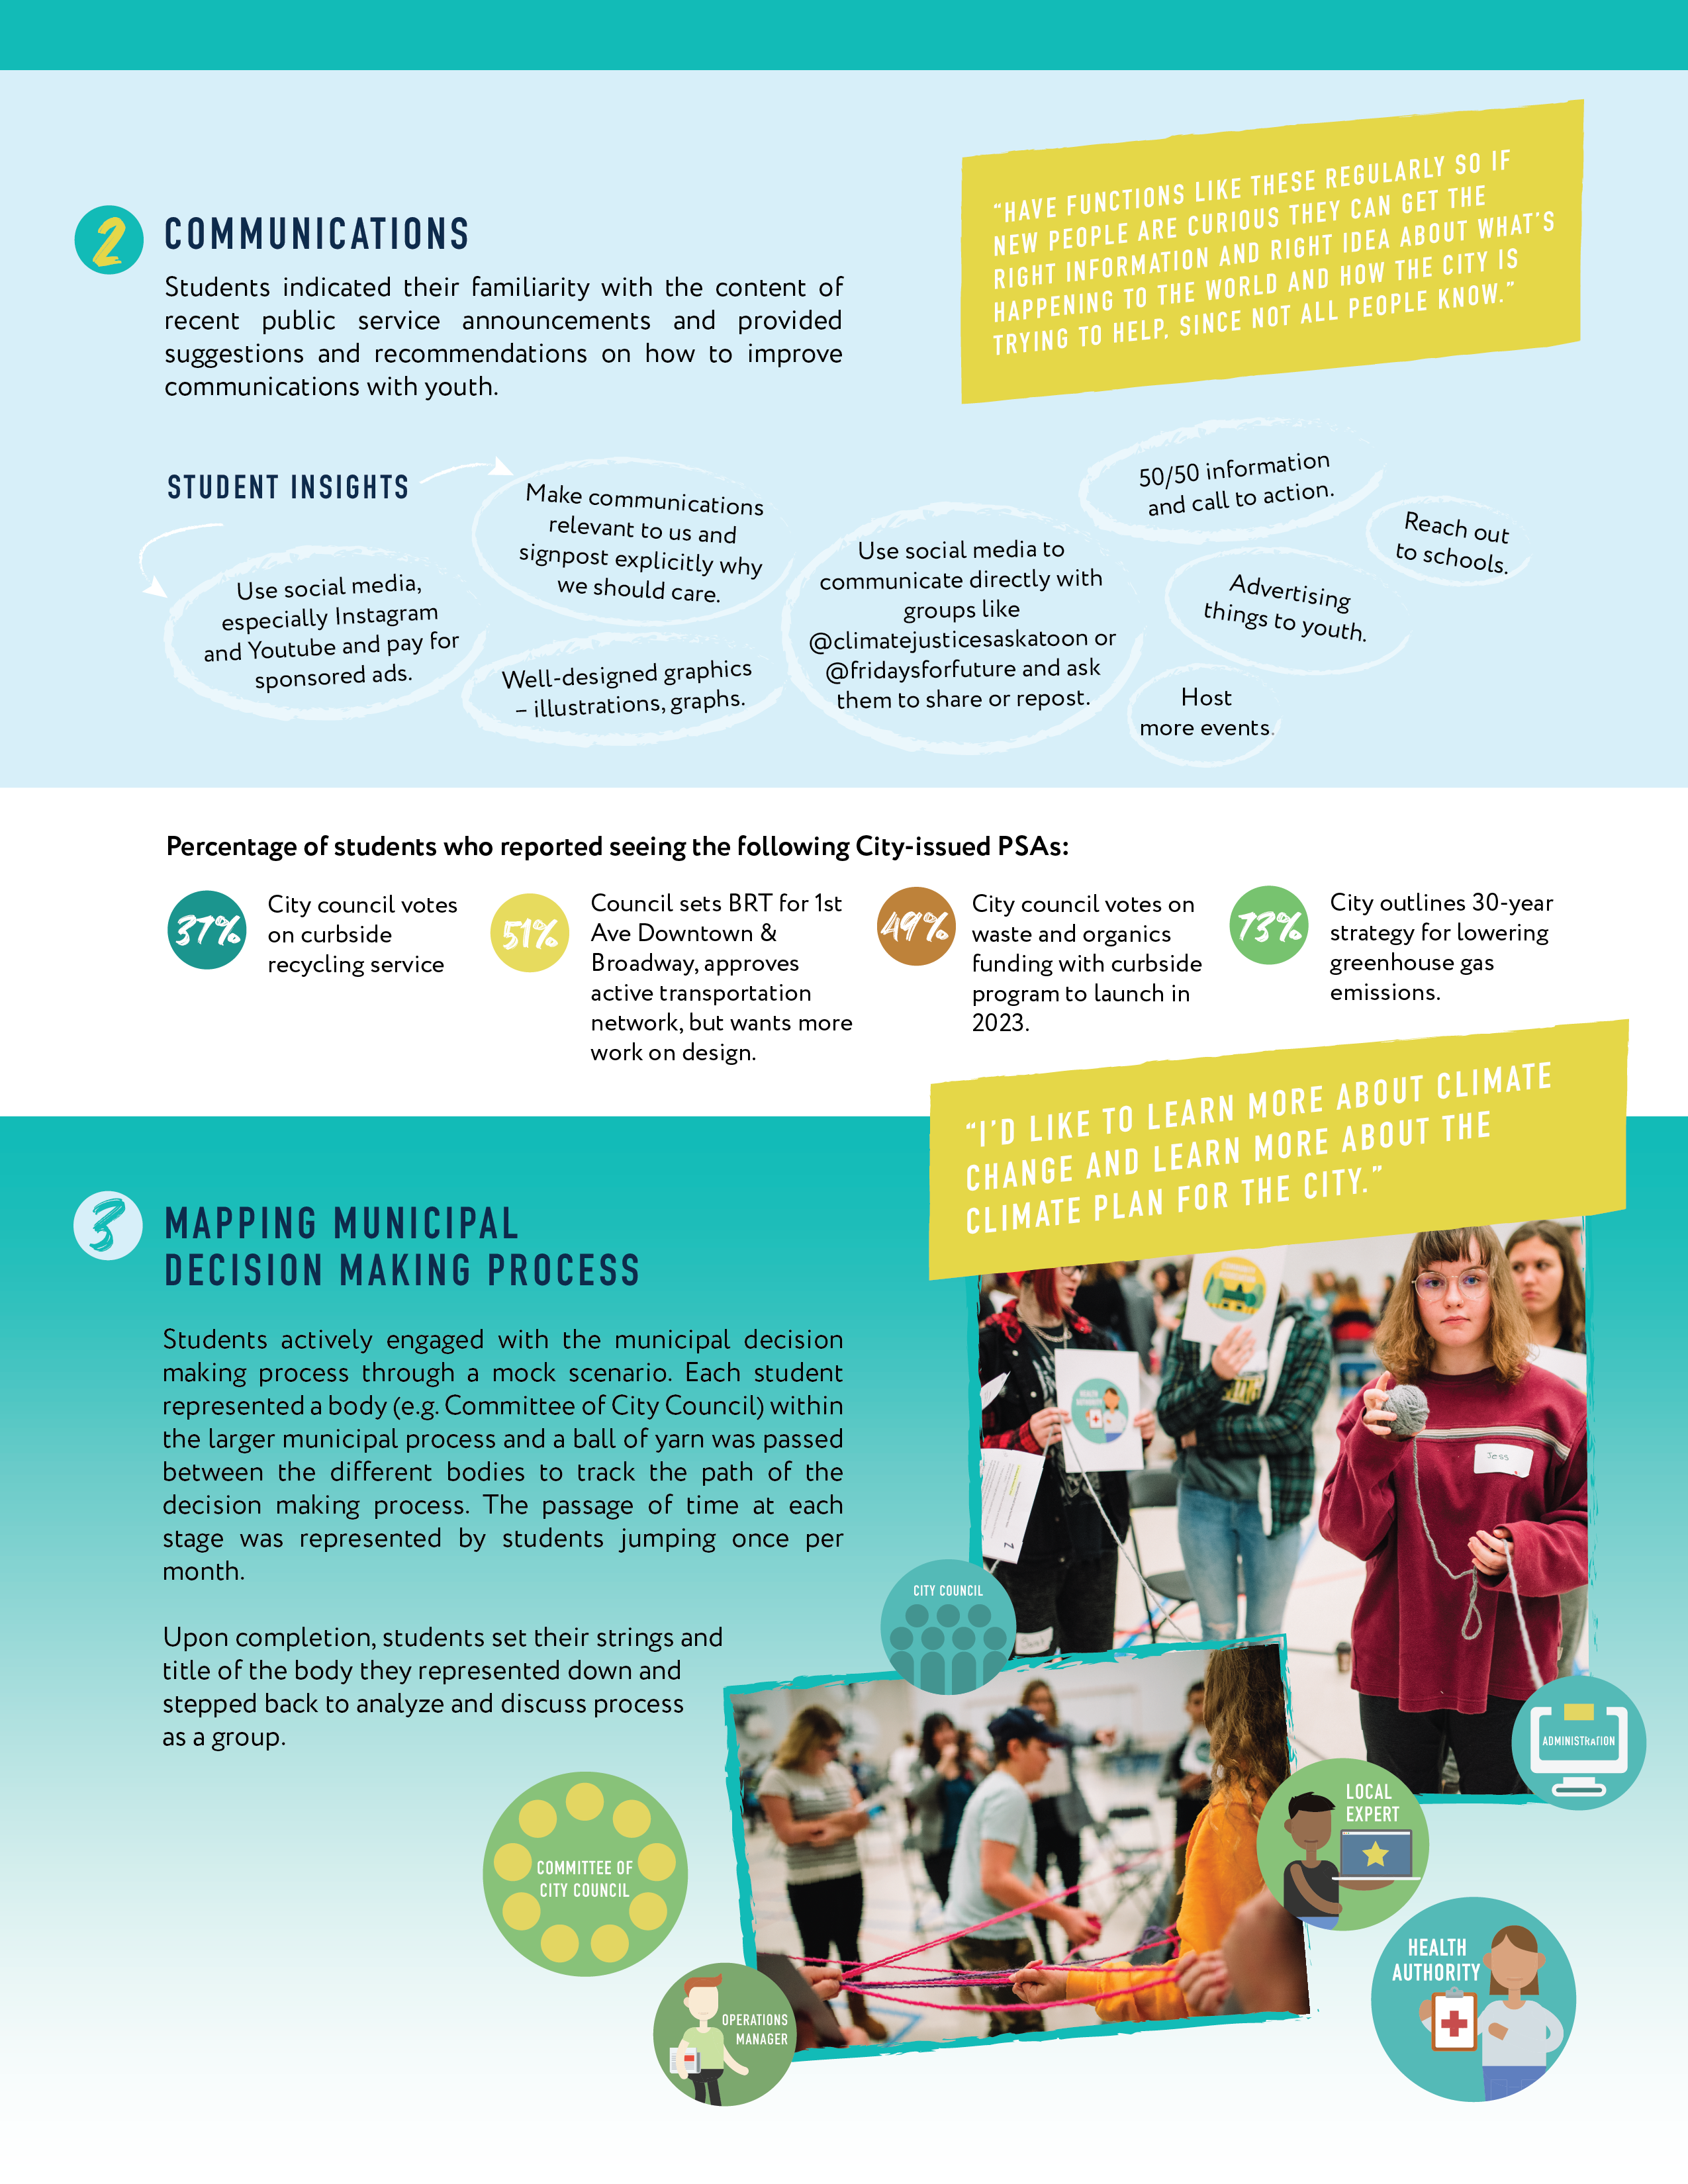 Web_Images_-_Final_Report_Youth_Climate_Action_Forum-02.png